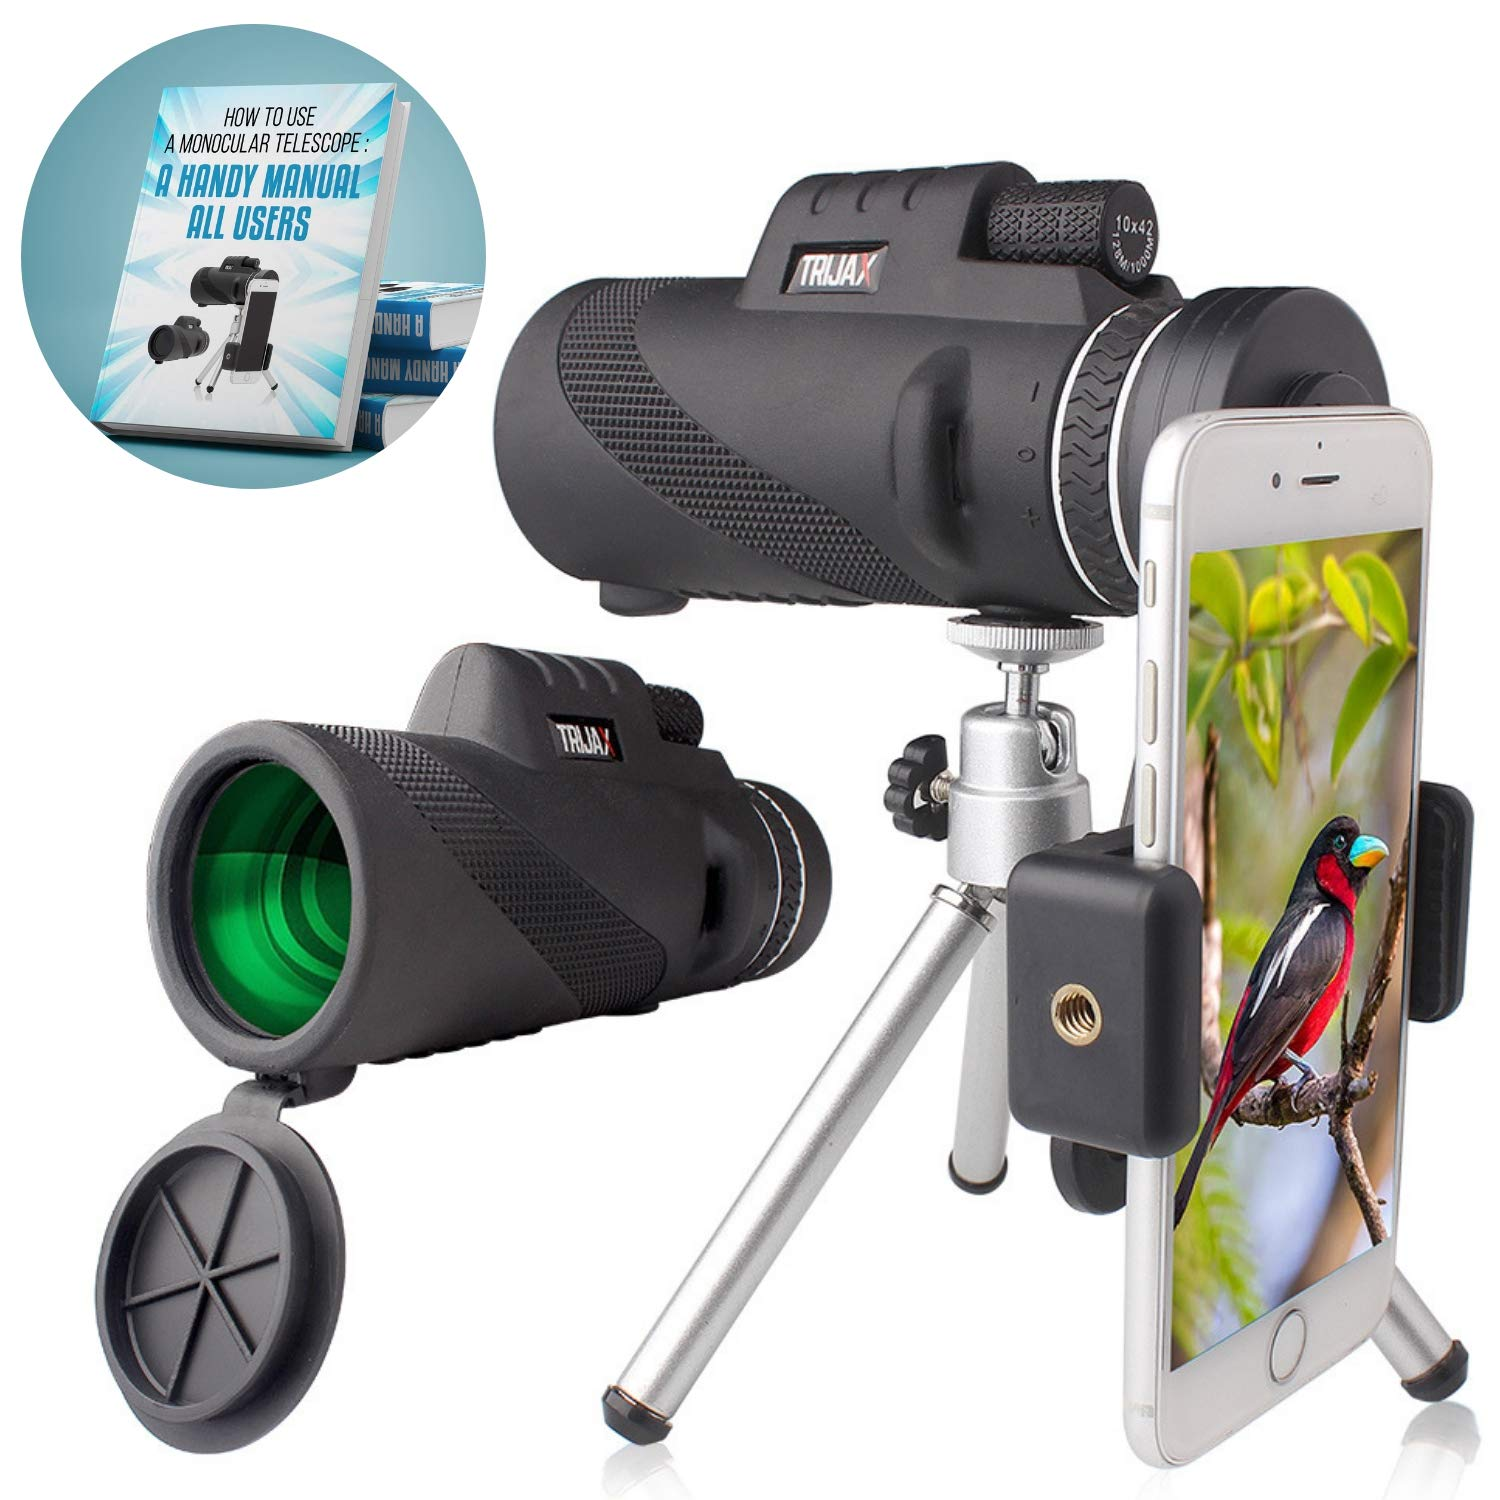 TRIJAX High Powered Monocular Telescope | Incredible Smartphone Scope With iPhone/Android Holder & Tripod Stand Accessories | Crisp Quality & Waterproof Ideal For Bird Watching,Travel etc,BONUS E-BOOK by TRIJAX